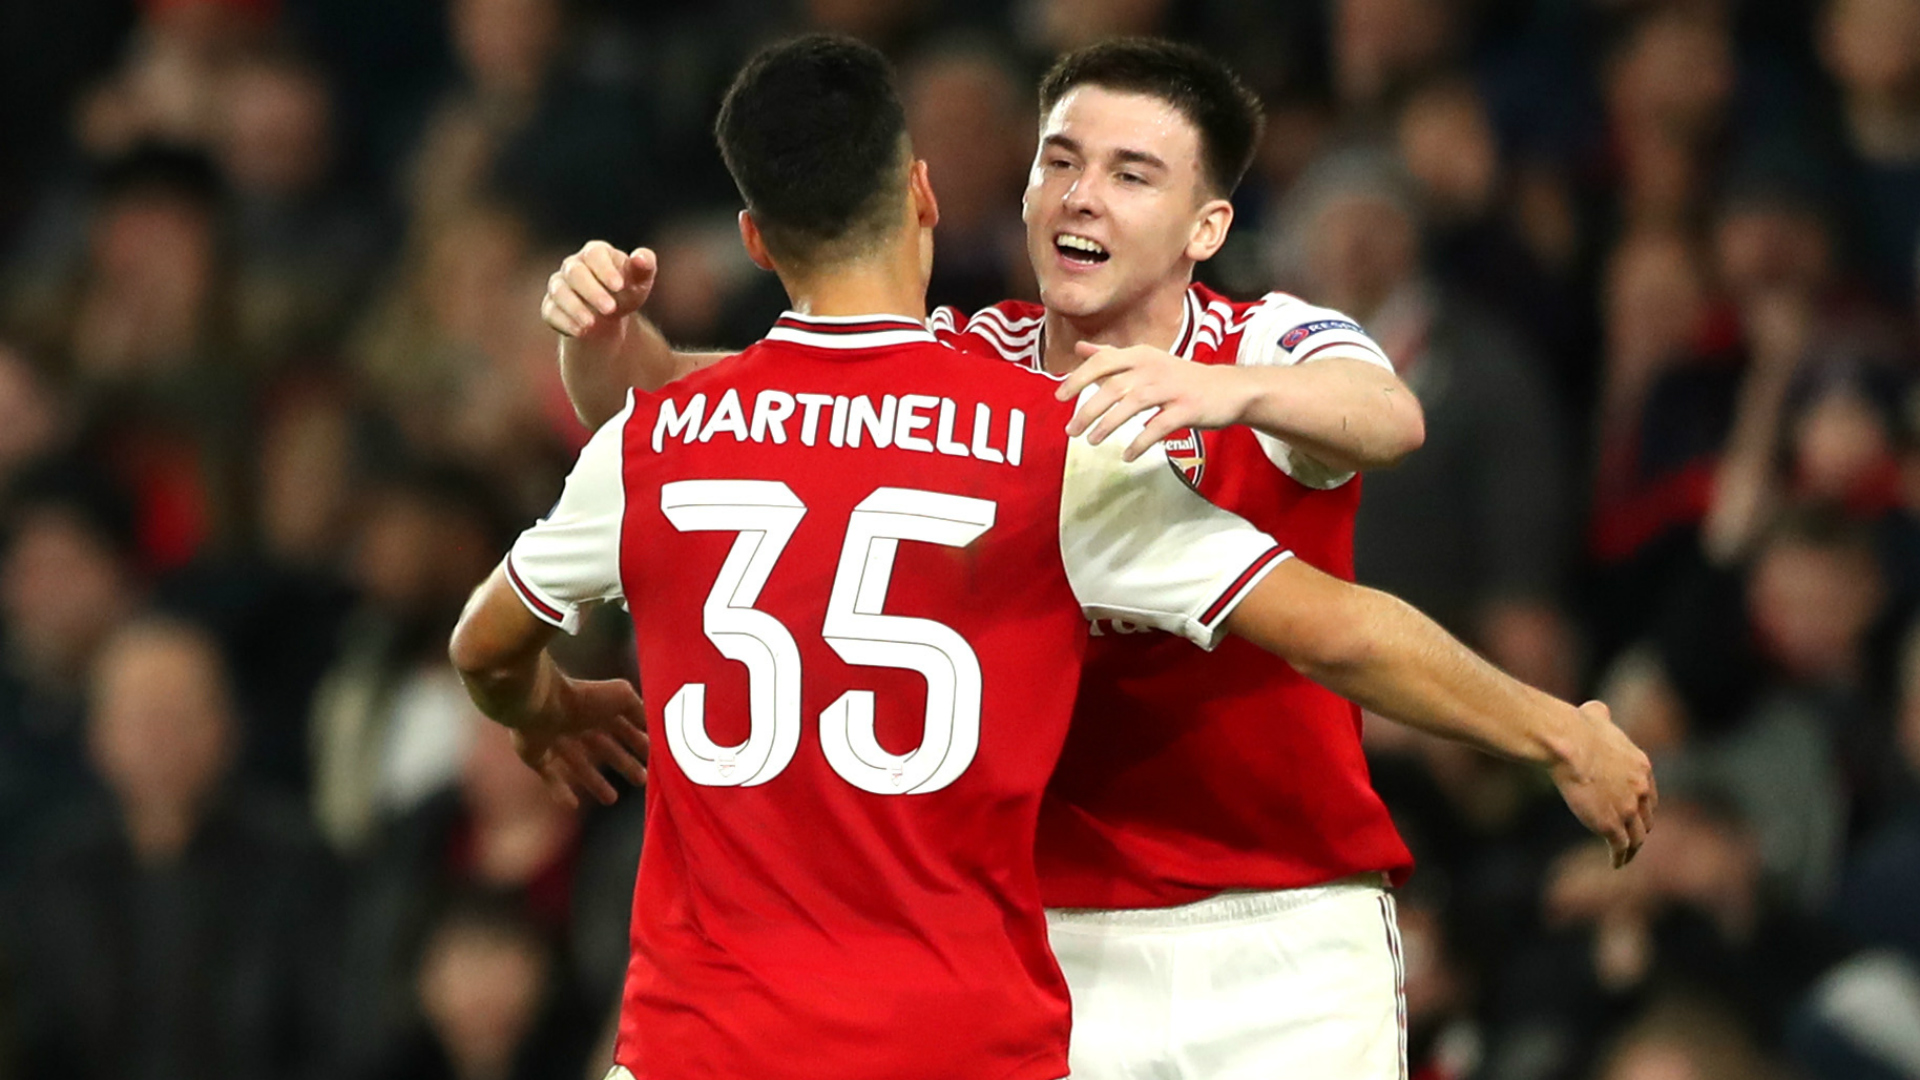 Martinelli can be a world-class player for many years, says Arsenal team-mate Tierney